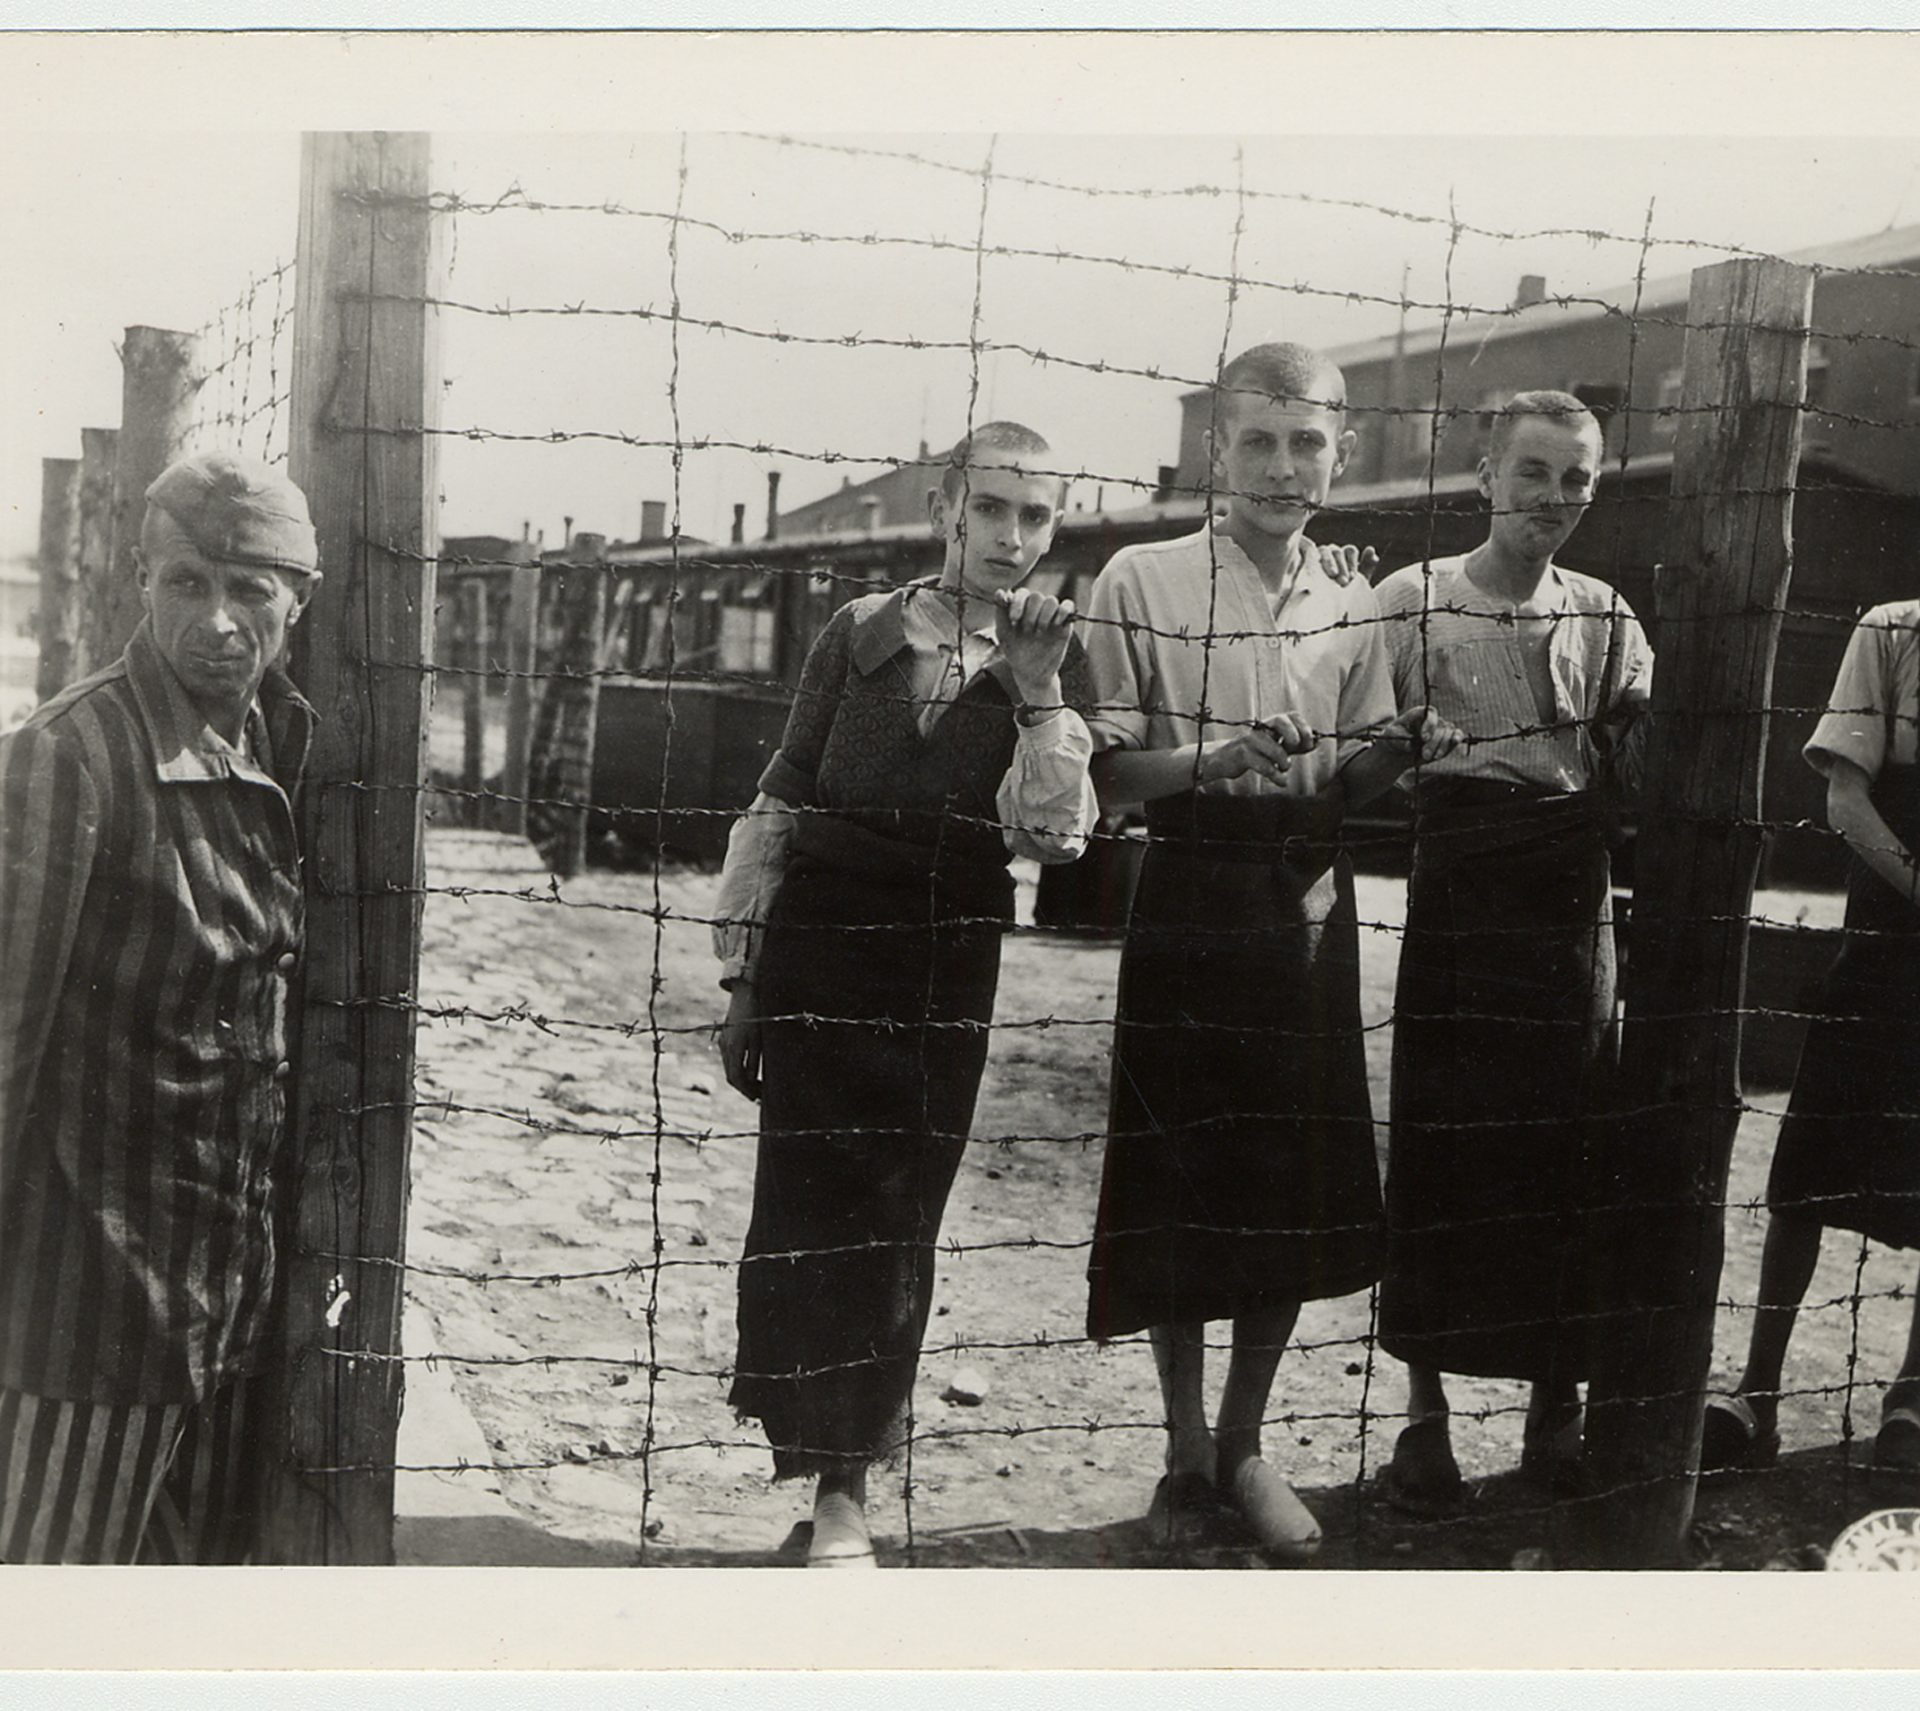 Children surviving the liberation of the Buchenwald concentration camp. April 1945